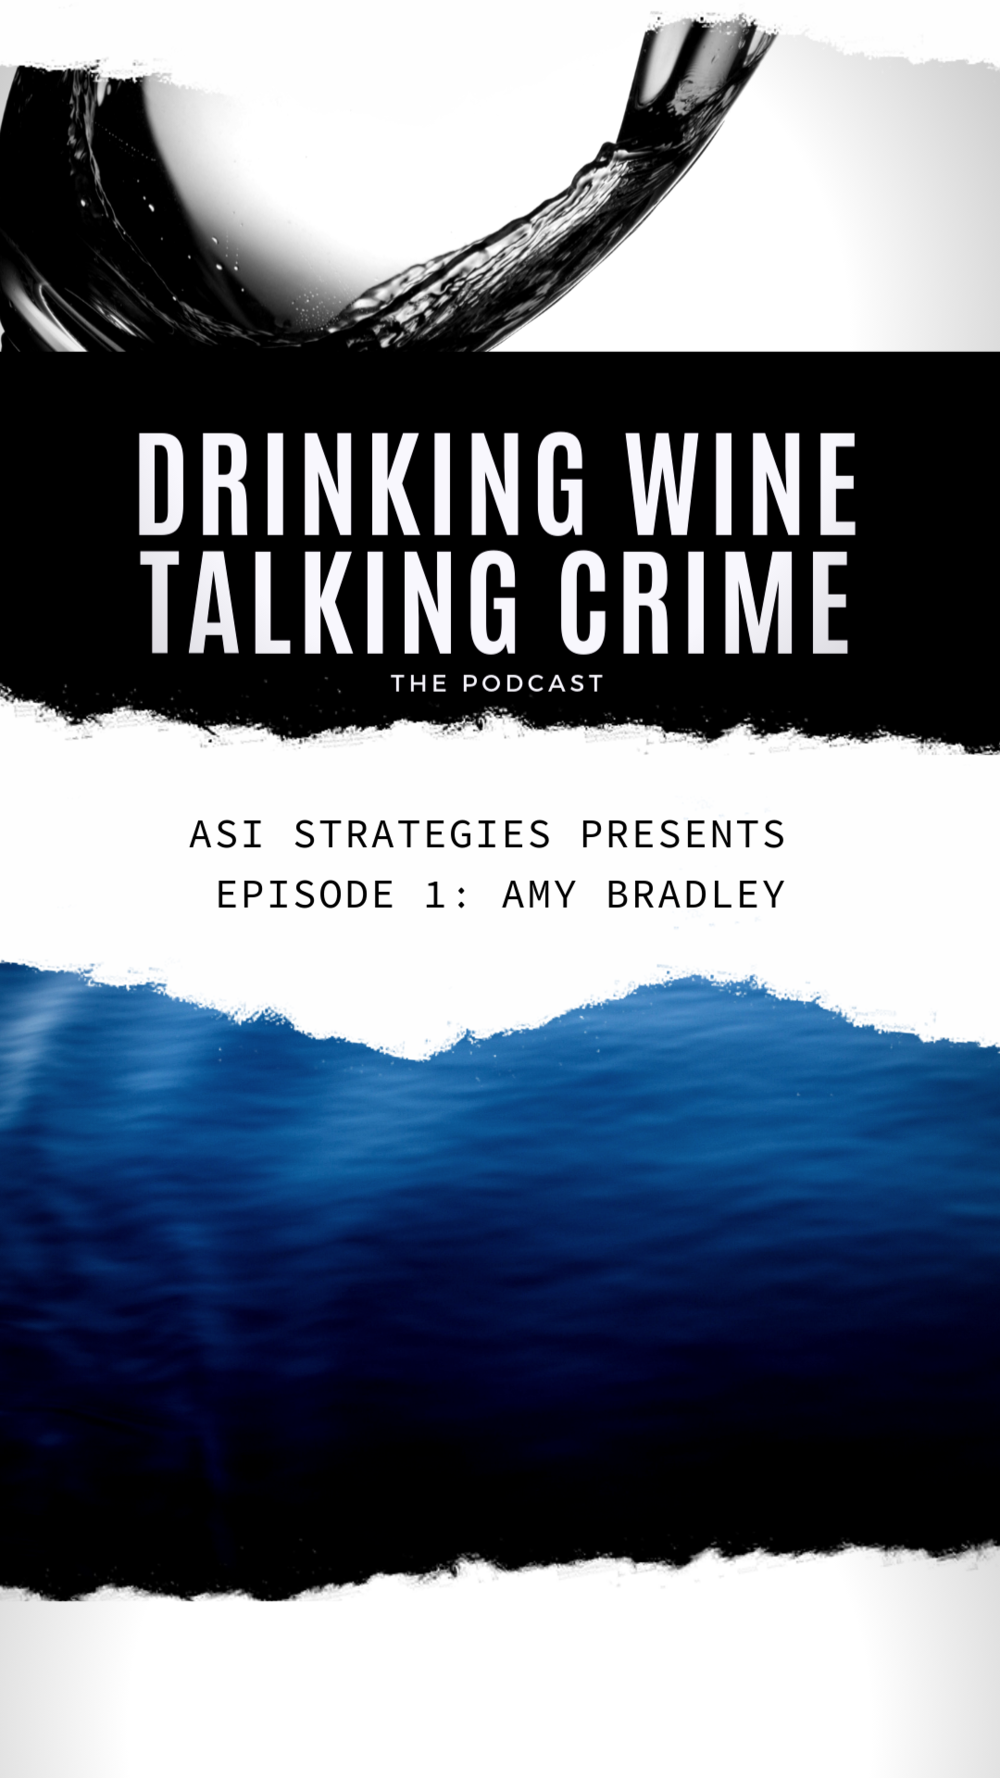 In episode 1 of ASI Strategies' new podcast,  Drinking Wine Talking Crime , we discuss the mysterious disappearance of Amy Bradley. Subscriptions to ASI's true crime podcast are FREE. Episodes are approximately 60 minutes long.